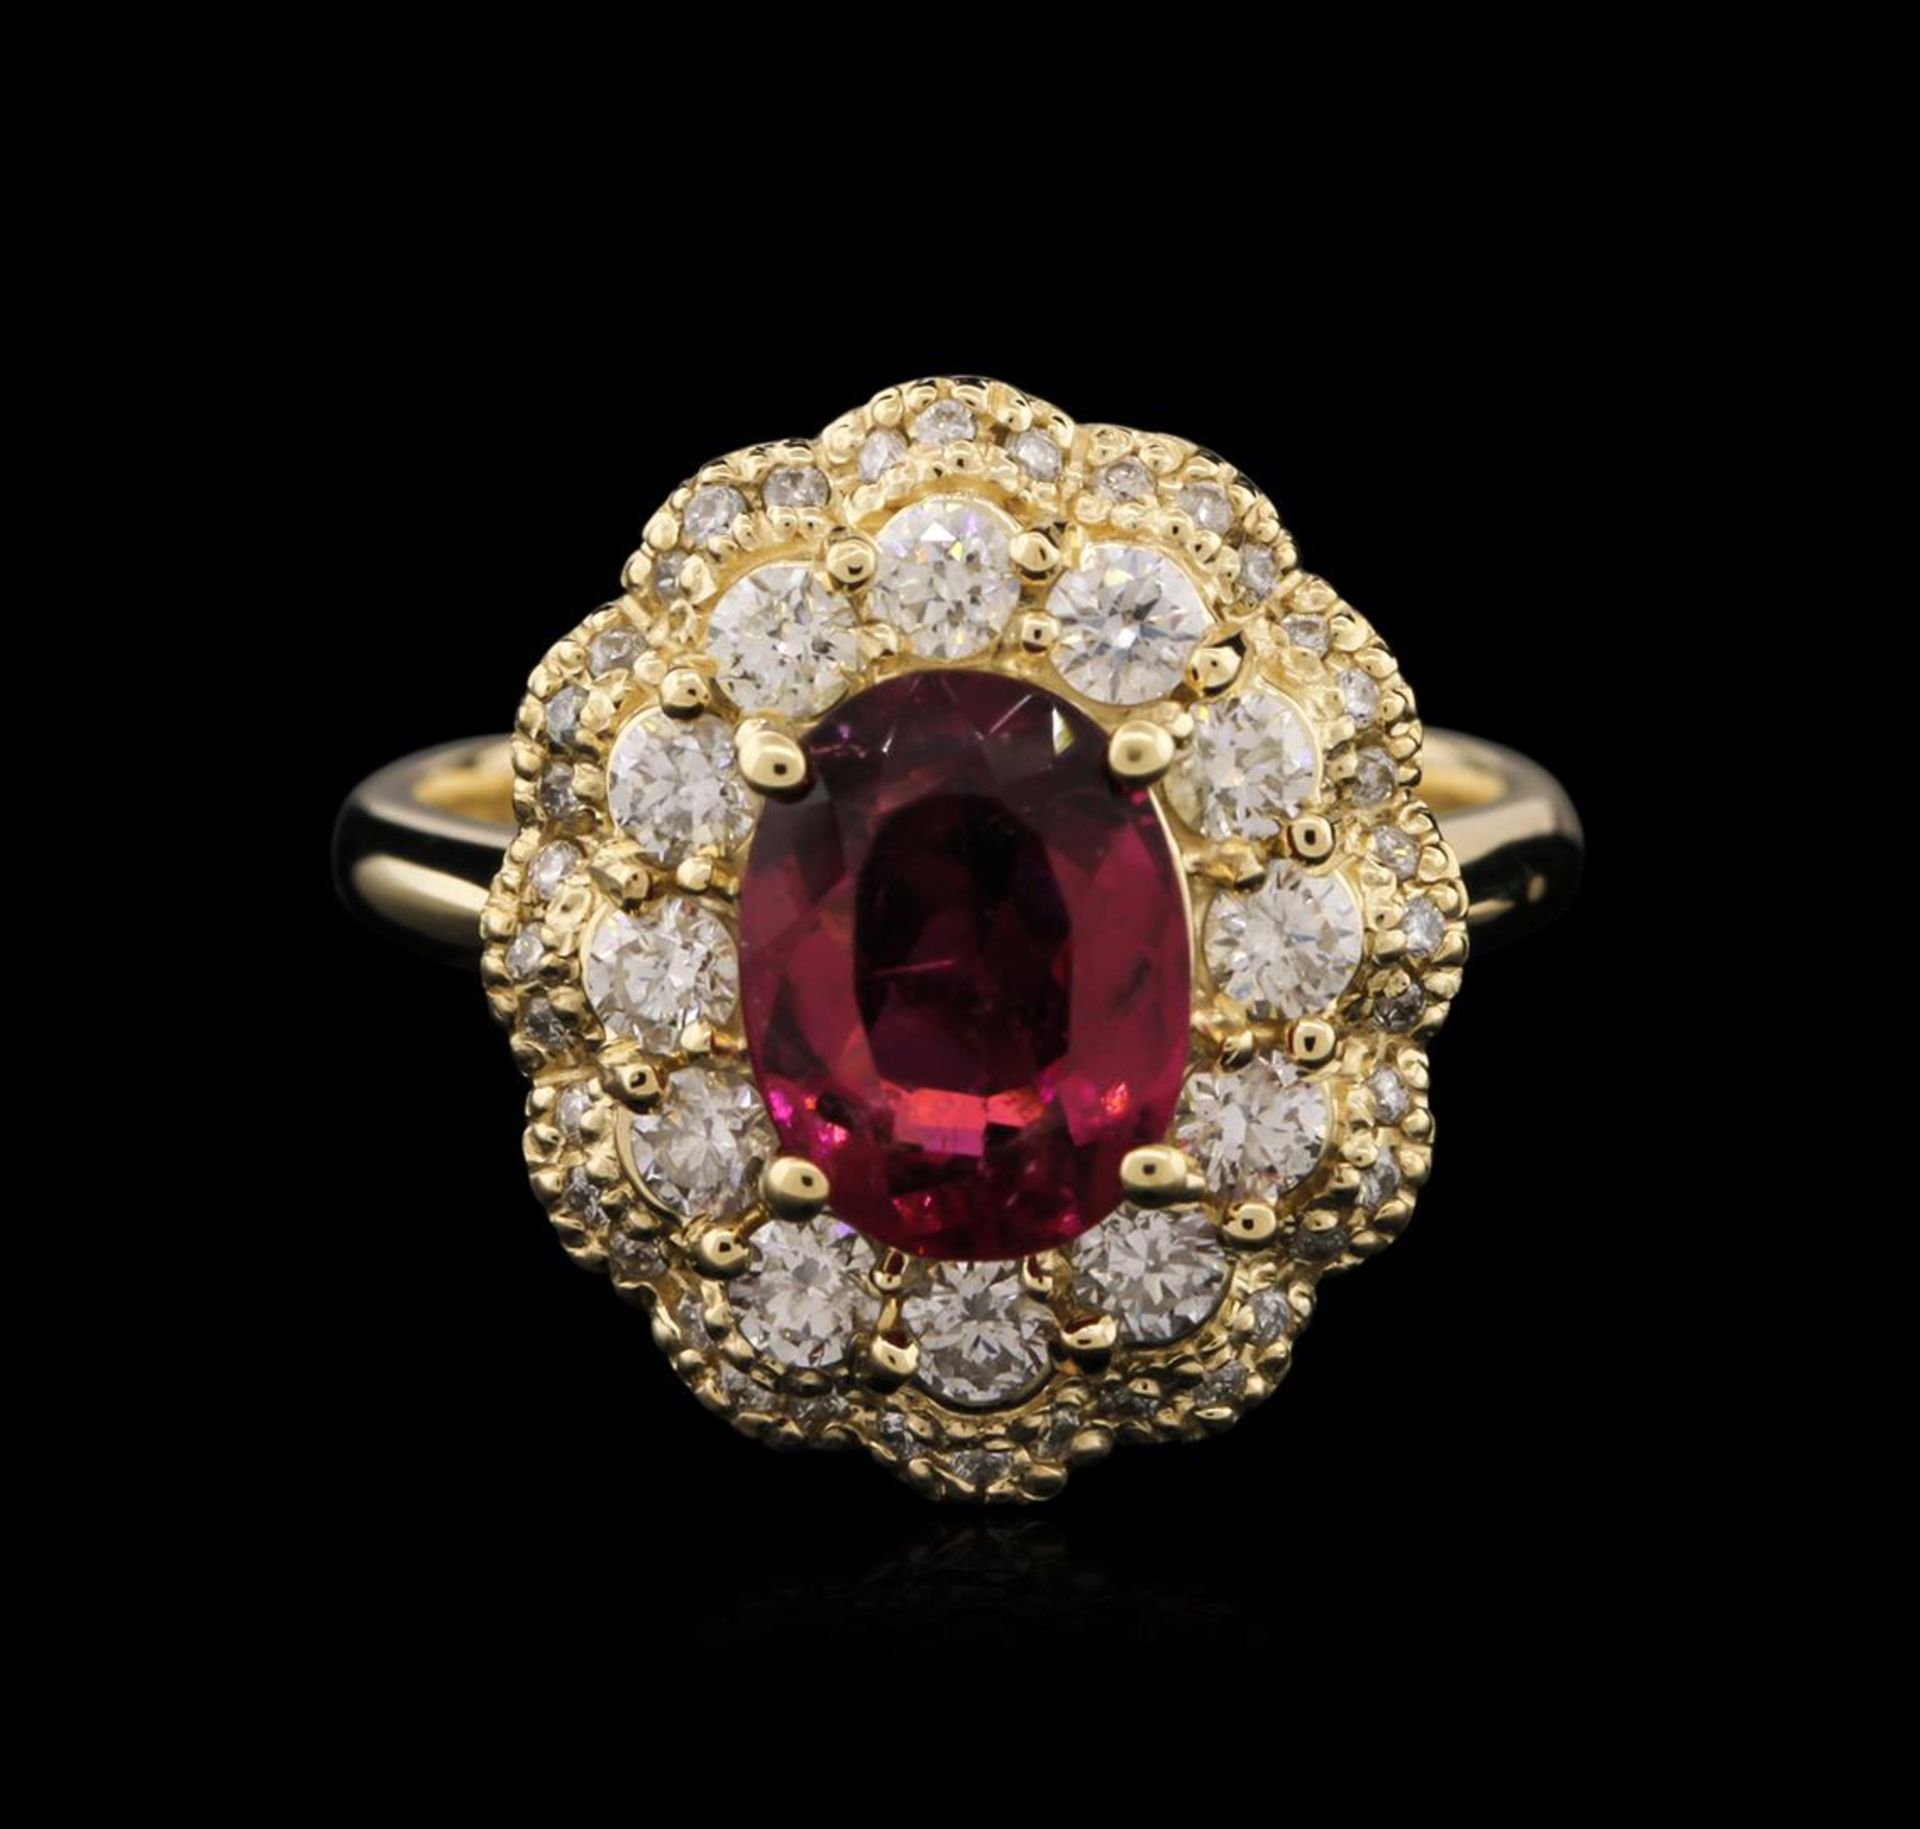 14KT Yellow Gold 1.77 ctw Tourmaline and Diamond Ring - Image 2 of 3